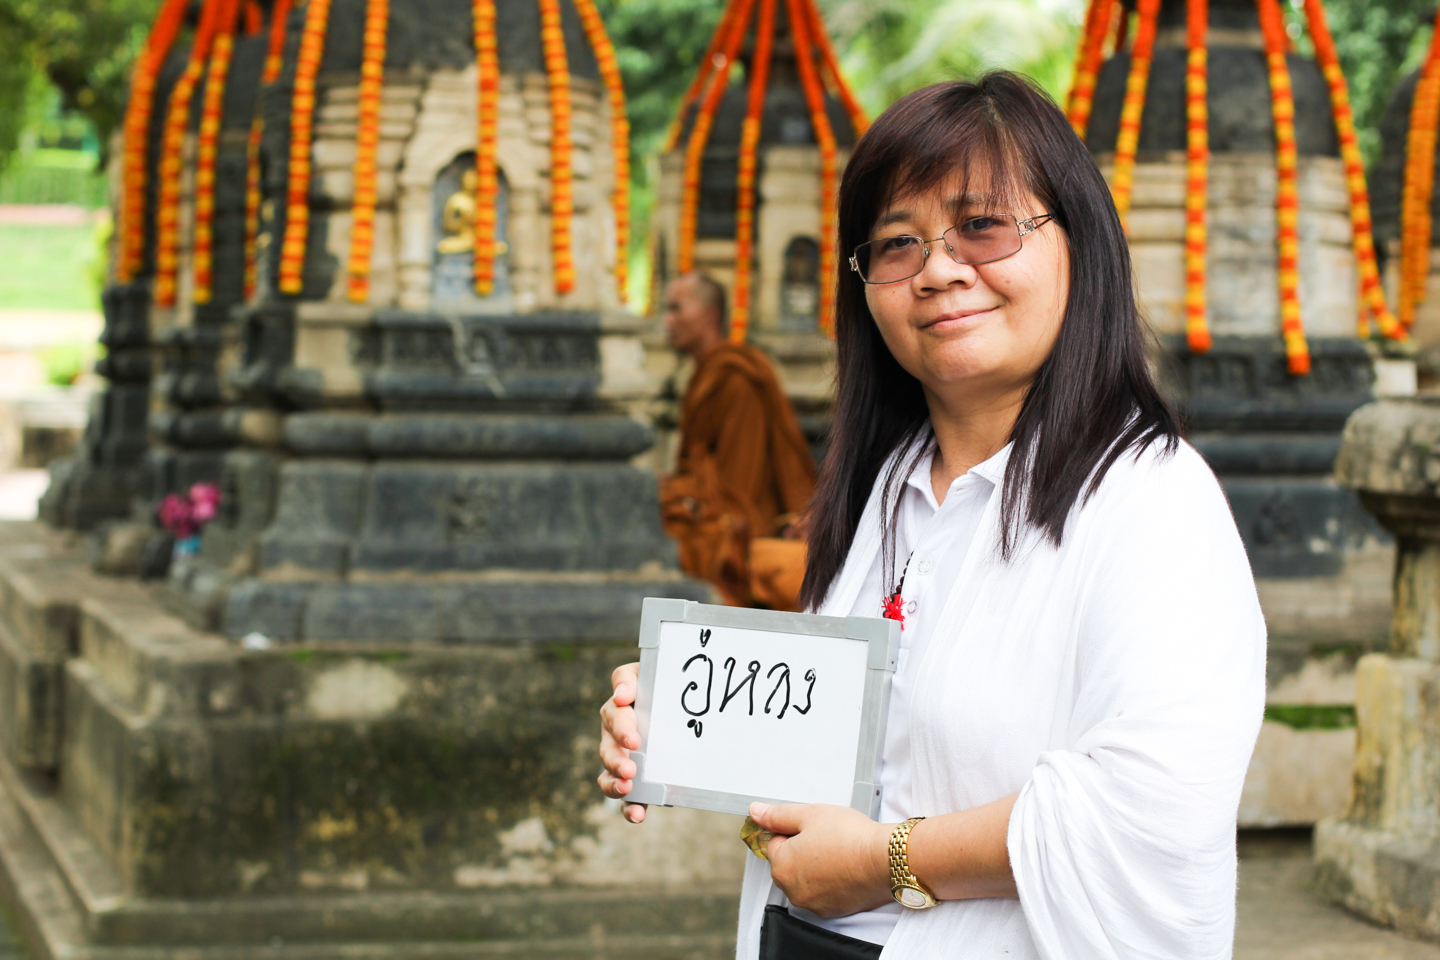 Khunthong Banjerdrungravee, pictured here at the Mahabodhi Temple in Bodhgaya, Bihar, where she was visiting on a pilgrimage, enjoys many types of tea, but her favorite is oolong. 'Usually I have one cup a day. But if I'm working, I have three.'